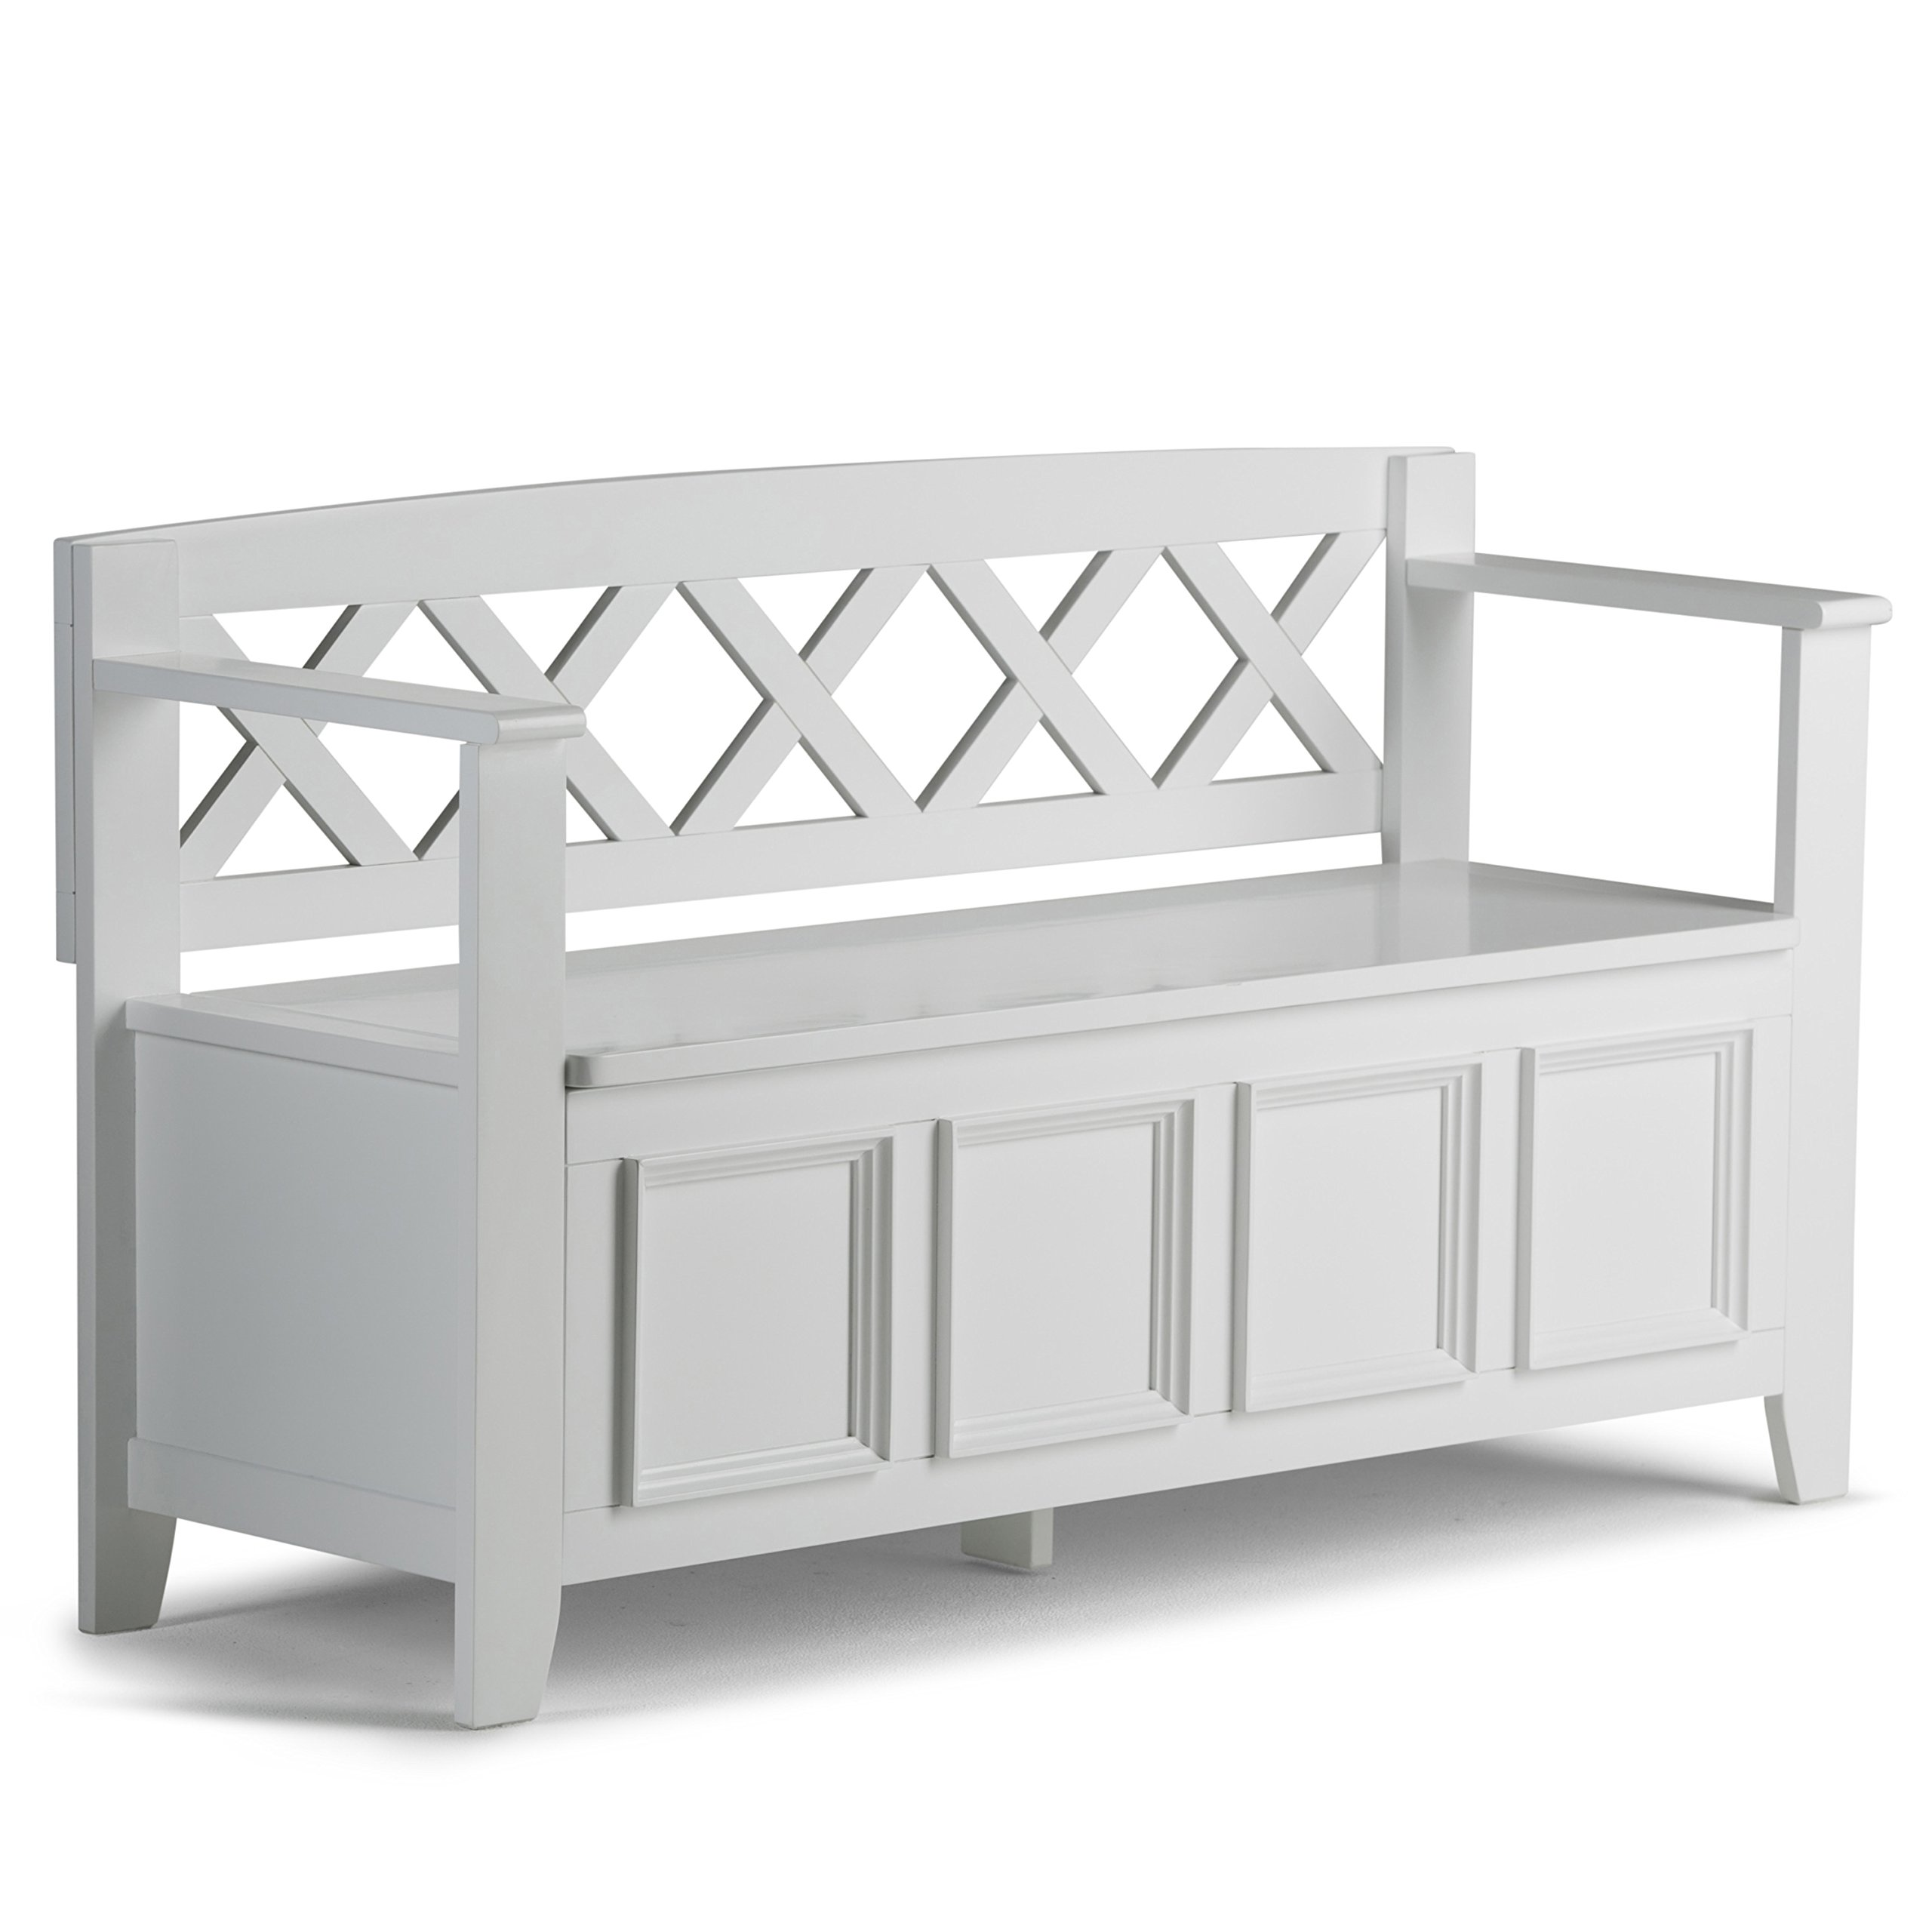 Superb Image Is Loading Simpli Home Amherst Solid Wood Entryway Storage Bench